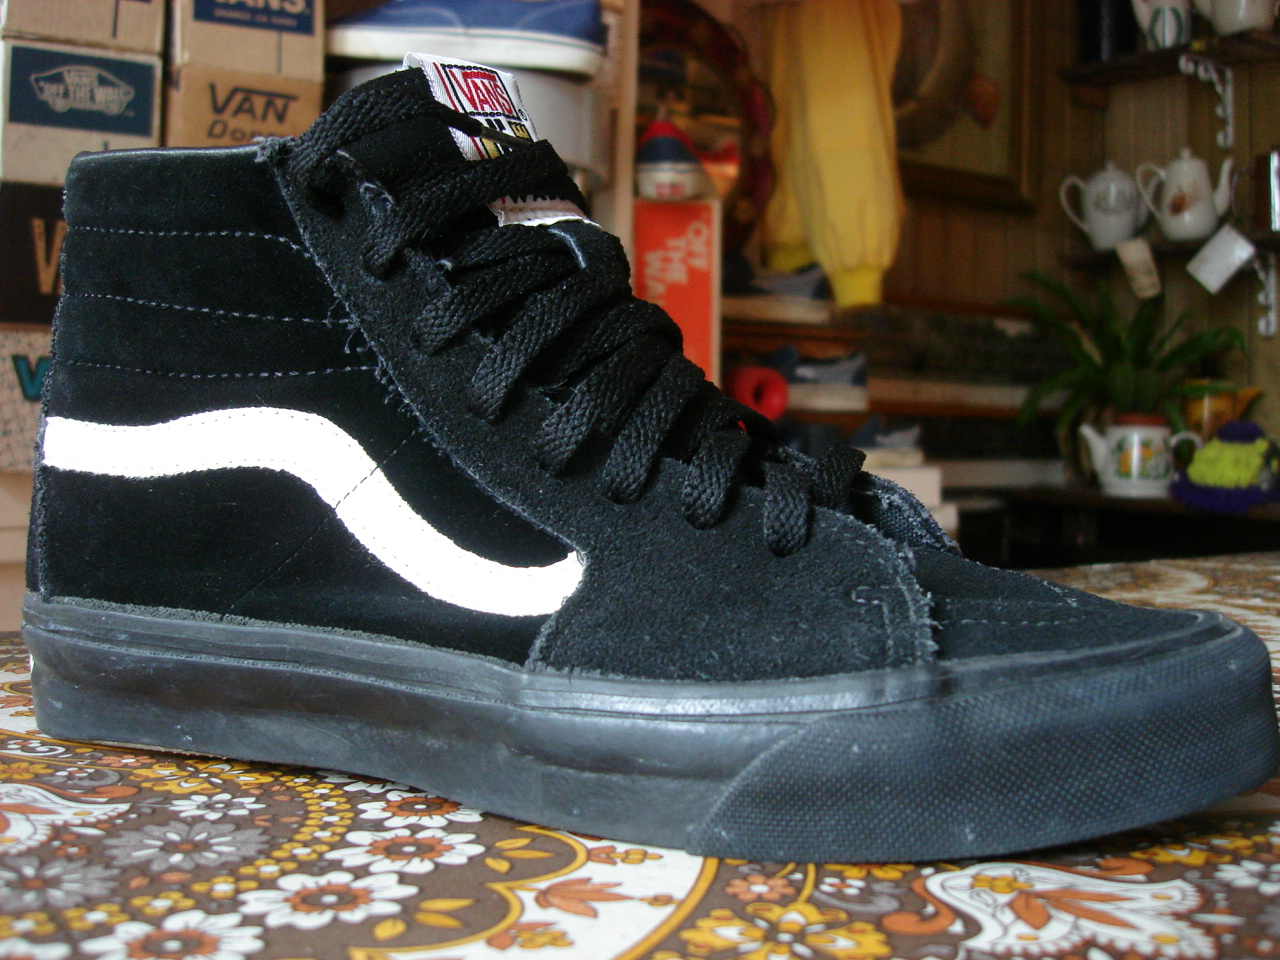 Vans Off The Wall Custom Shoes